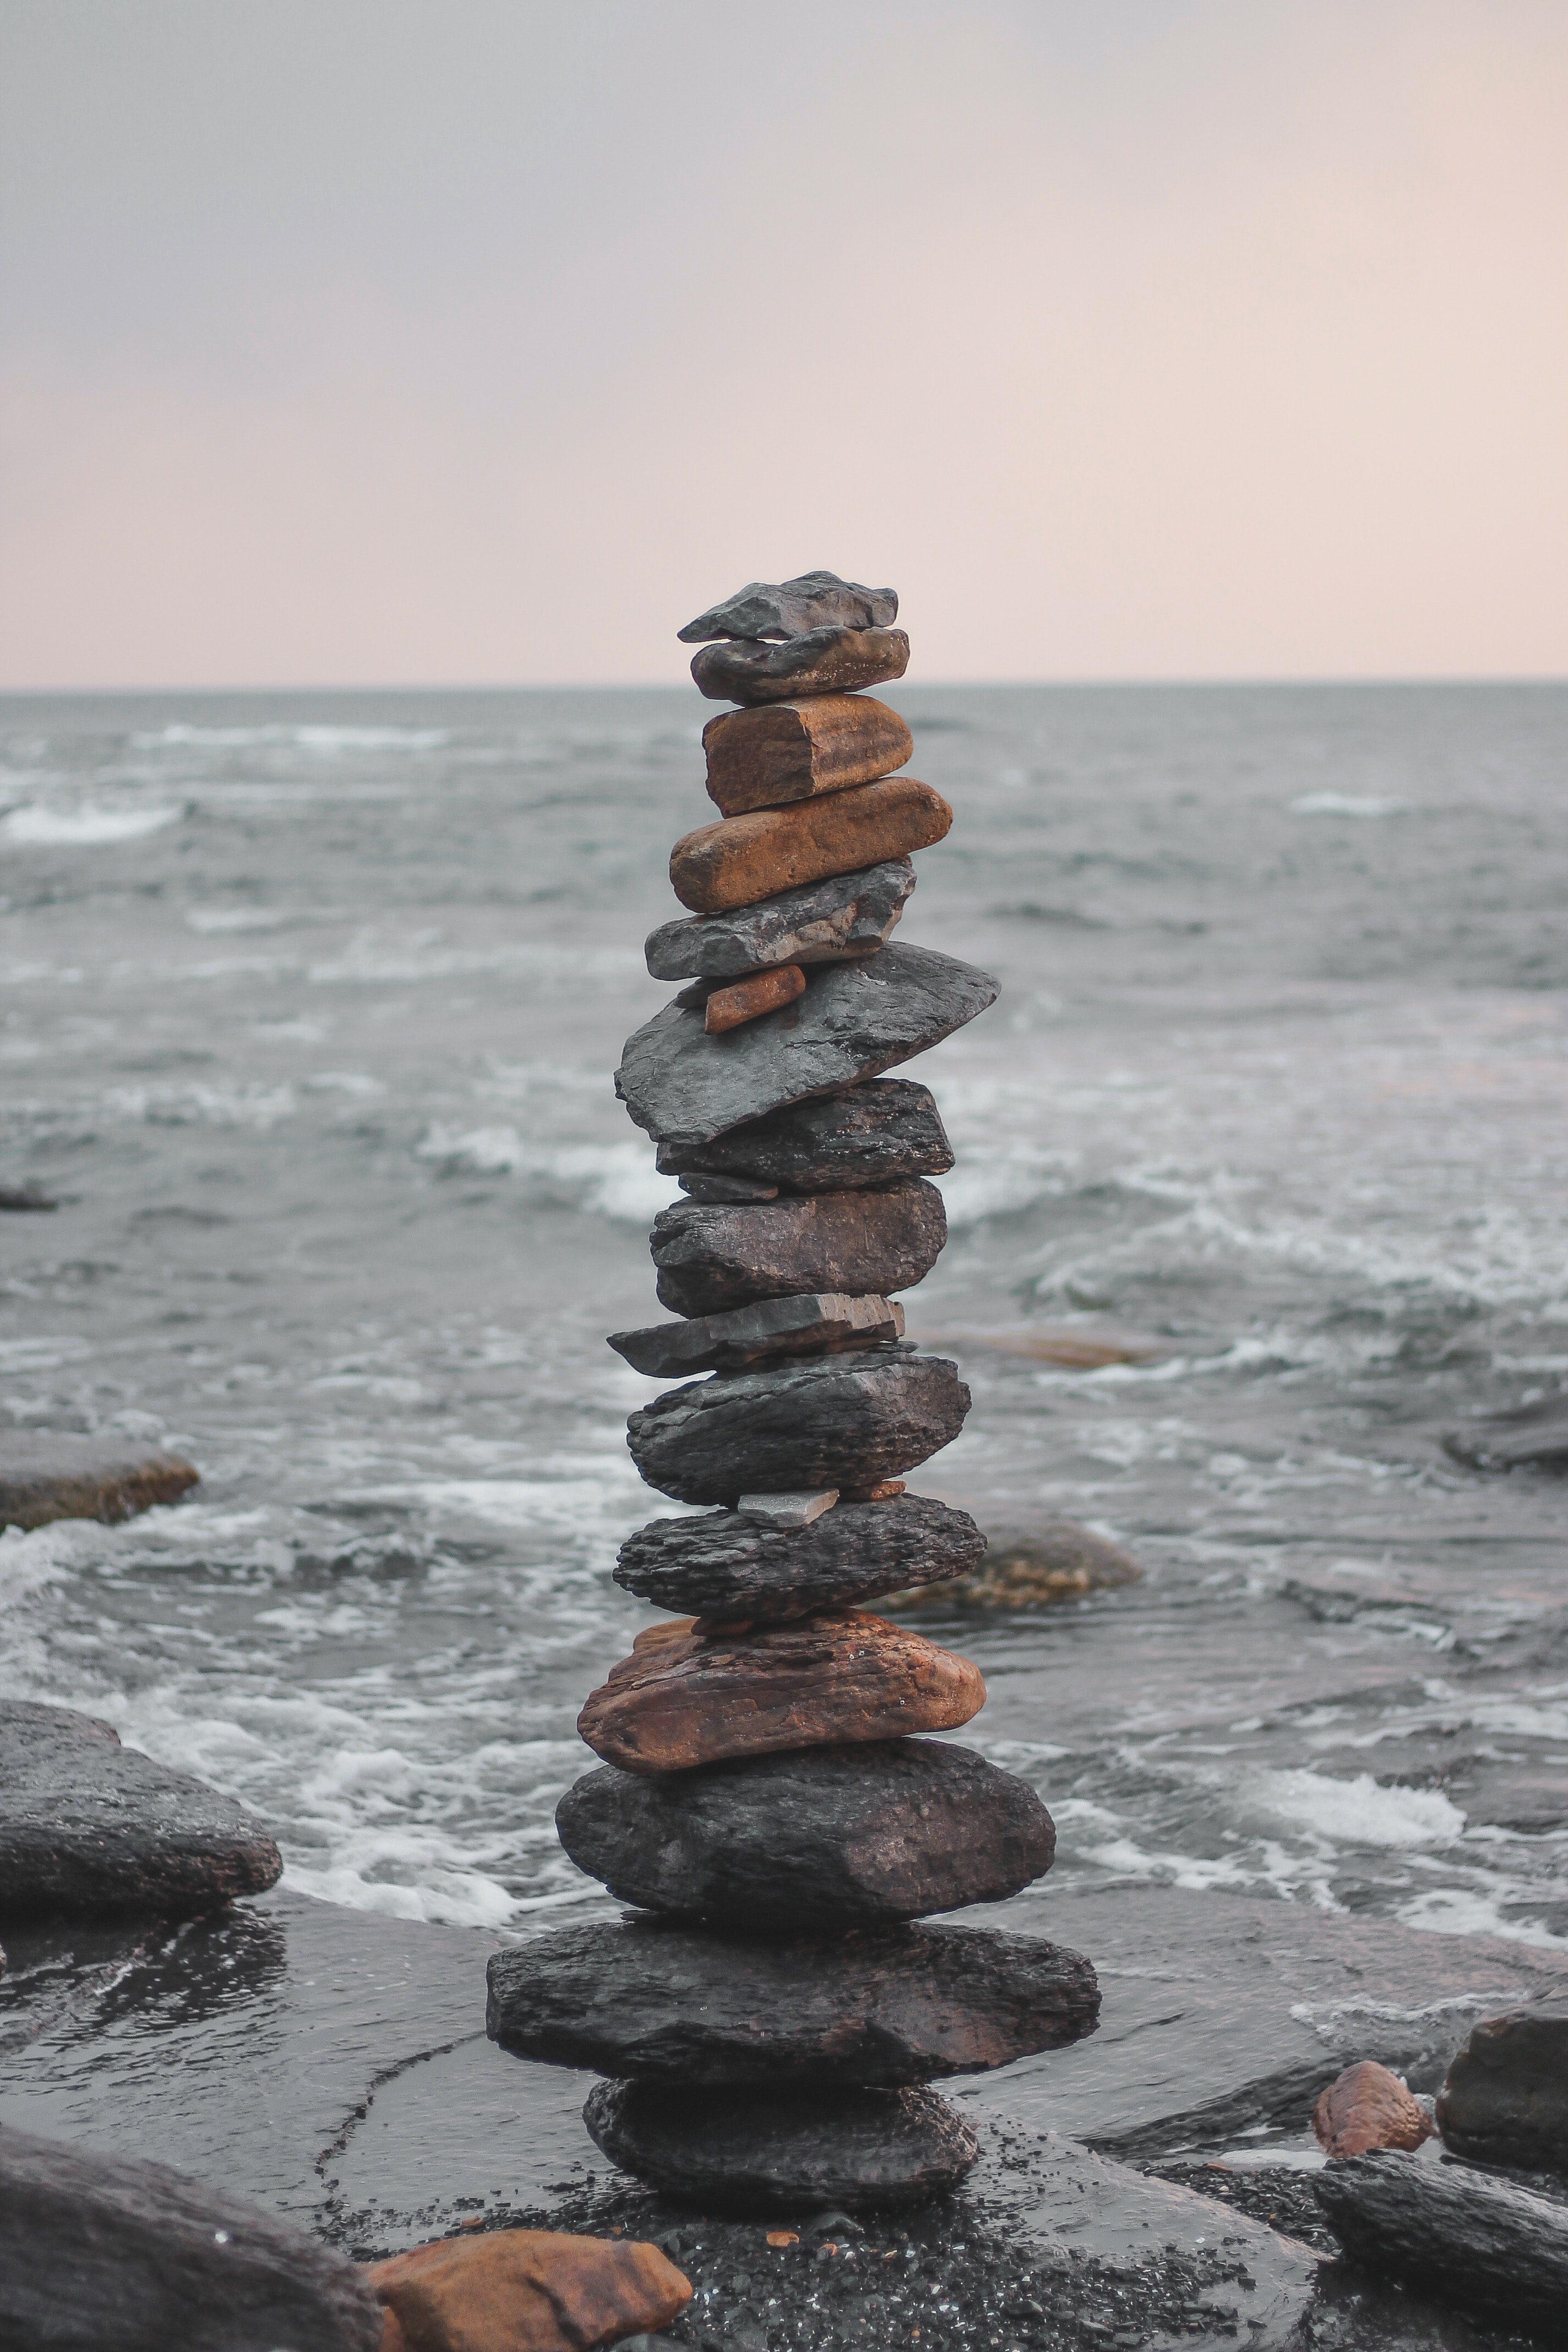 92371 download wallpaper Nature, Stones, Sea, Waves, Balance, Harmony screensavers and pictures for free